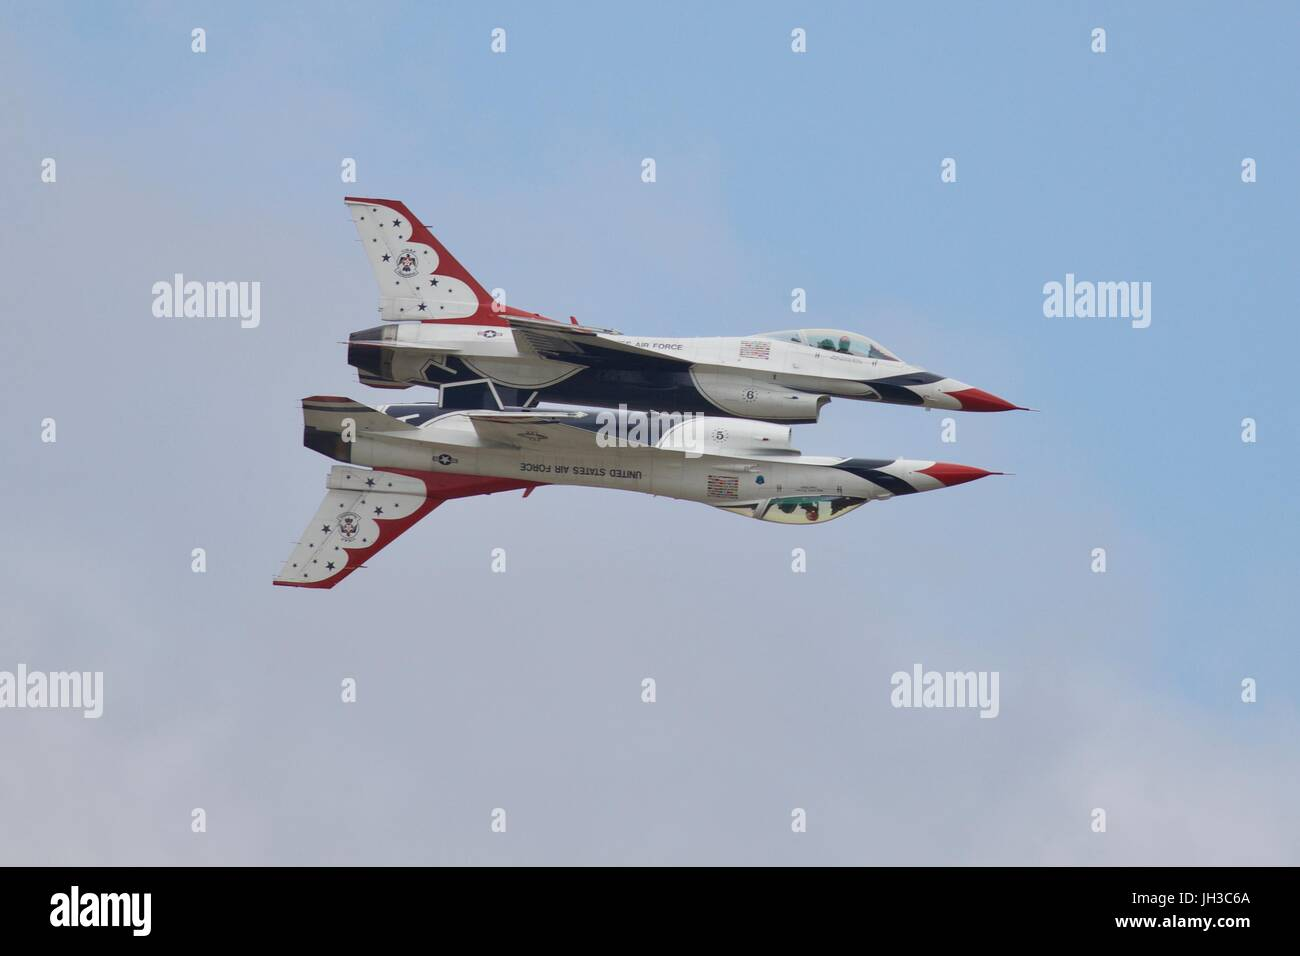 United States Air Force Thunderbirds performing at the Royal International Air Tattoo - Stock Image